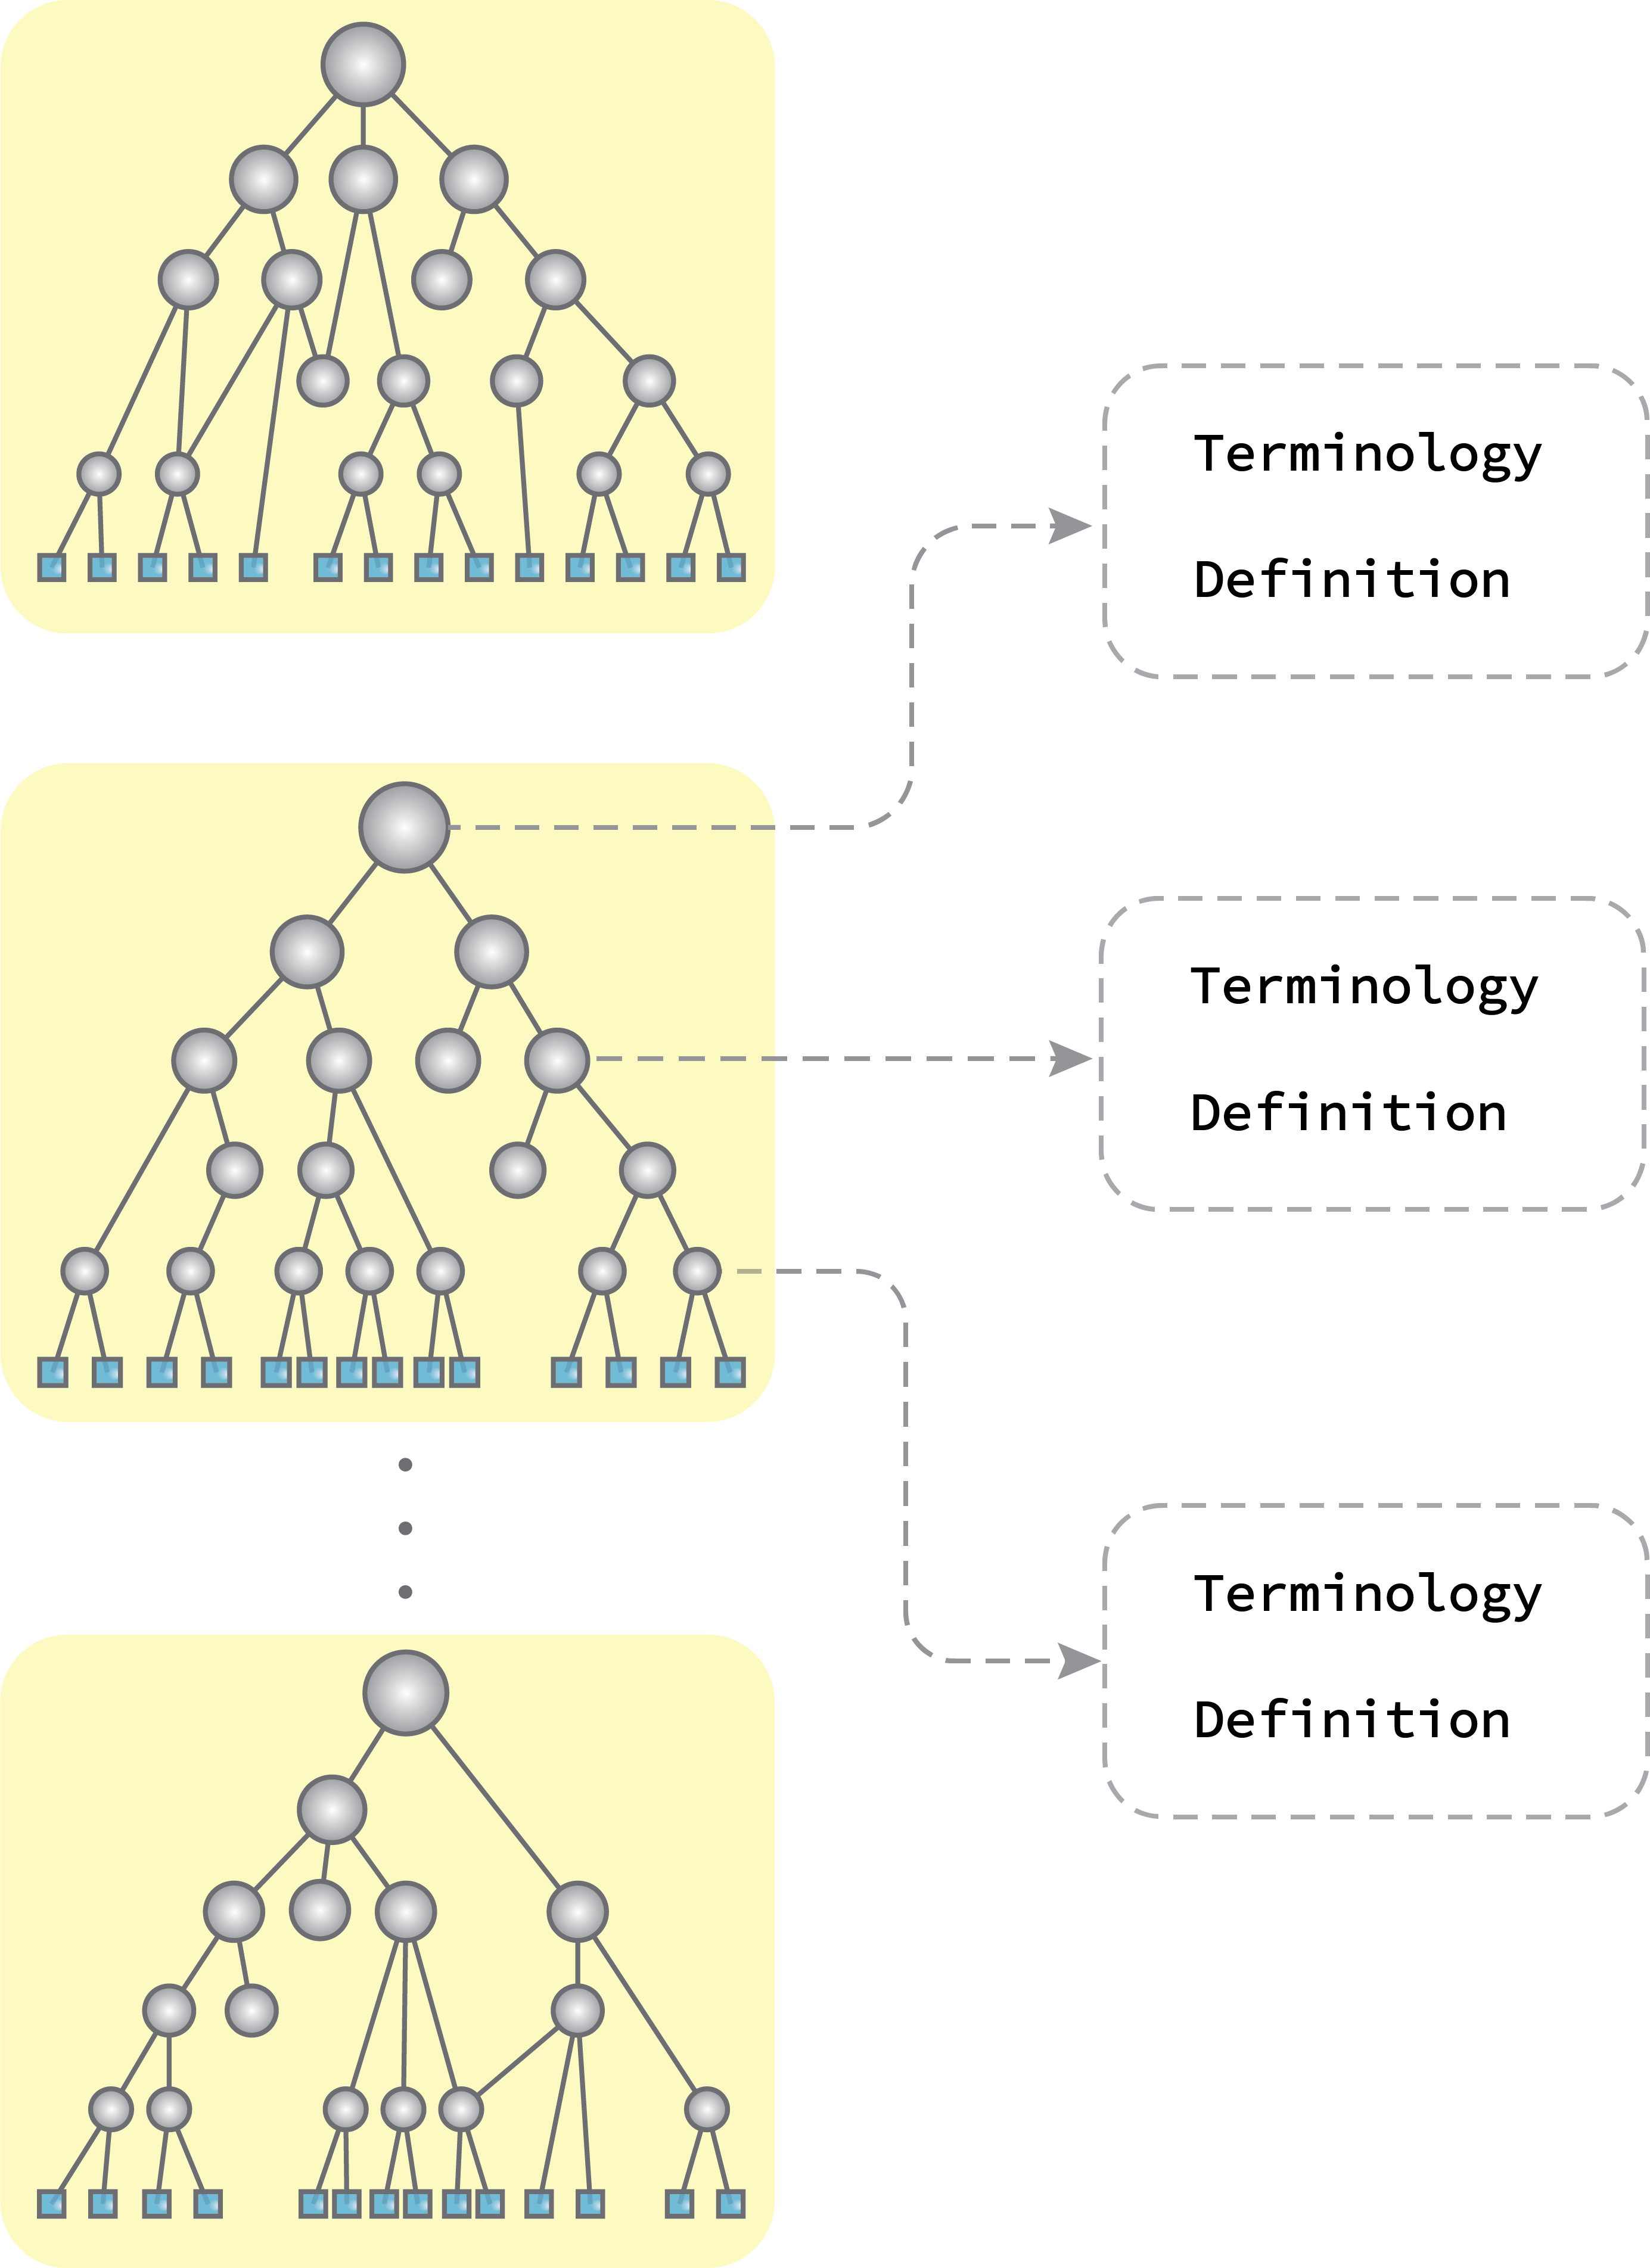 Graphine dataset contains 2,010,648 terminology definition pairs organized in 227 directed acyclic graphs. Each node in the graph is associated with a terminology and its definition. Terminologies are organized from coarse-grained ones to fine-grained ones in each graph.